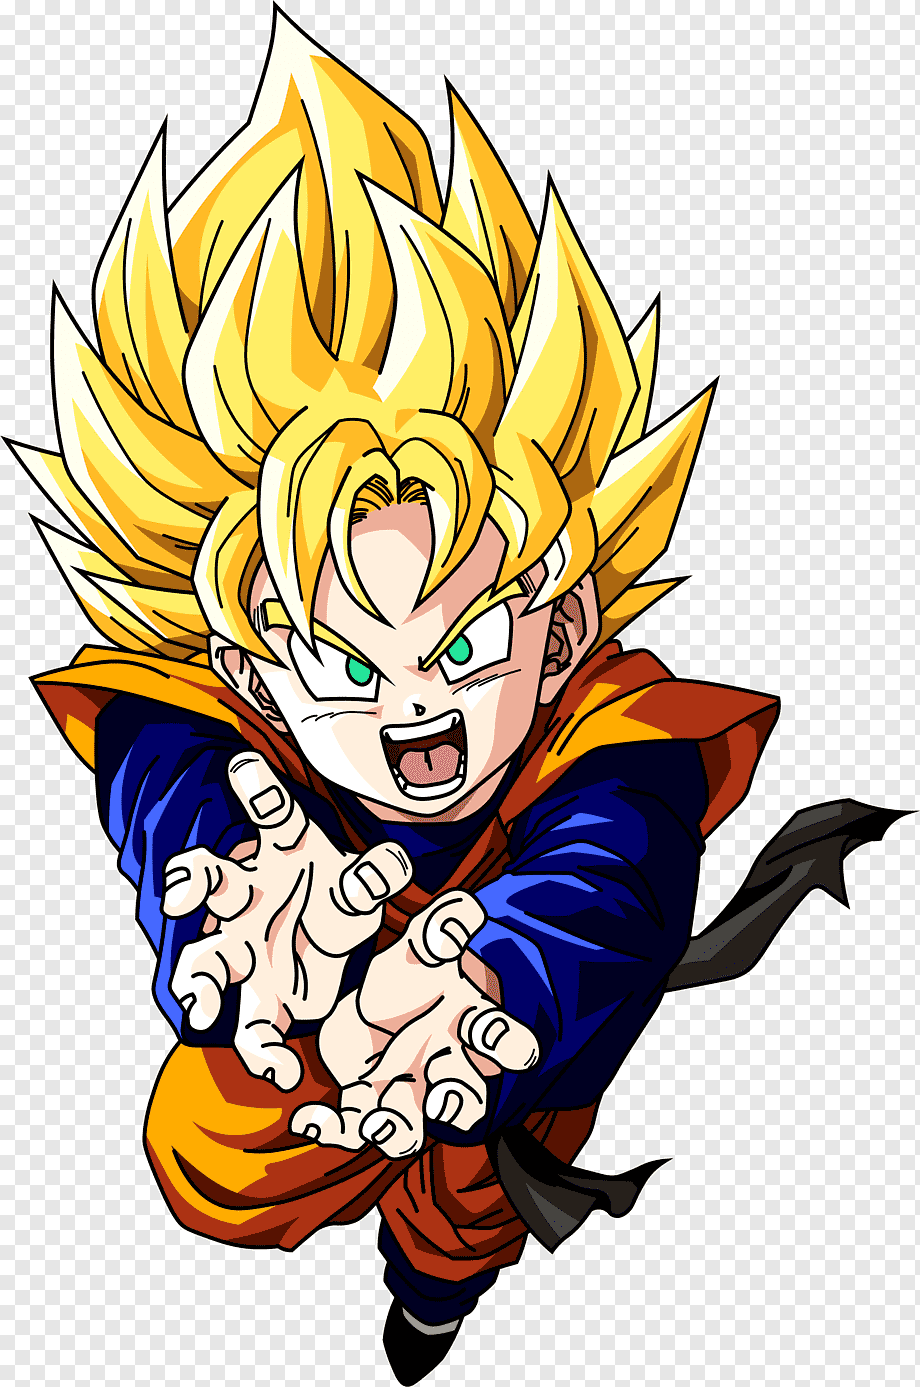 Goten Gohan Goku Vegeta Trunks Goku Computer Wallpaper Goten 2994560 Hd Wallpaper Backgrounds Download